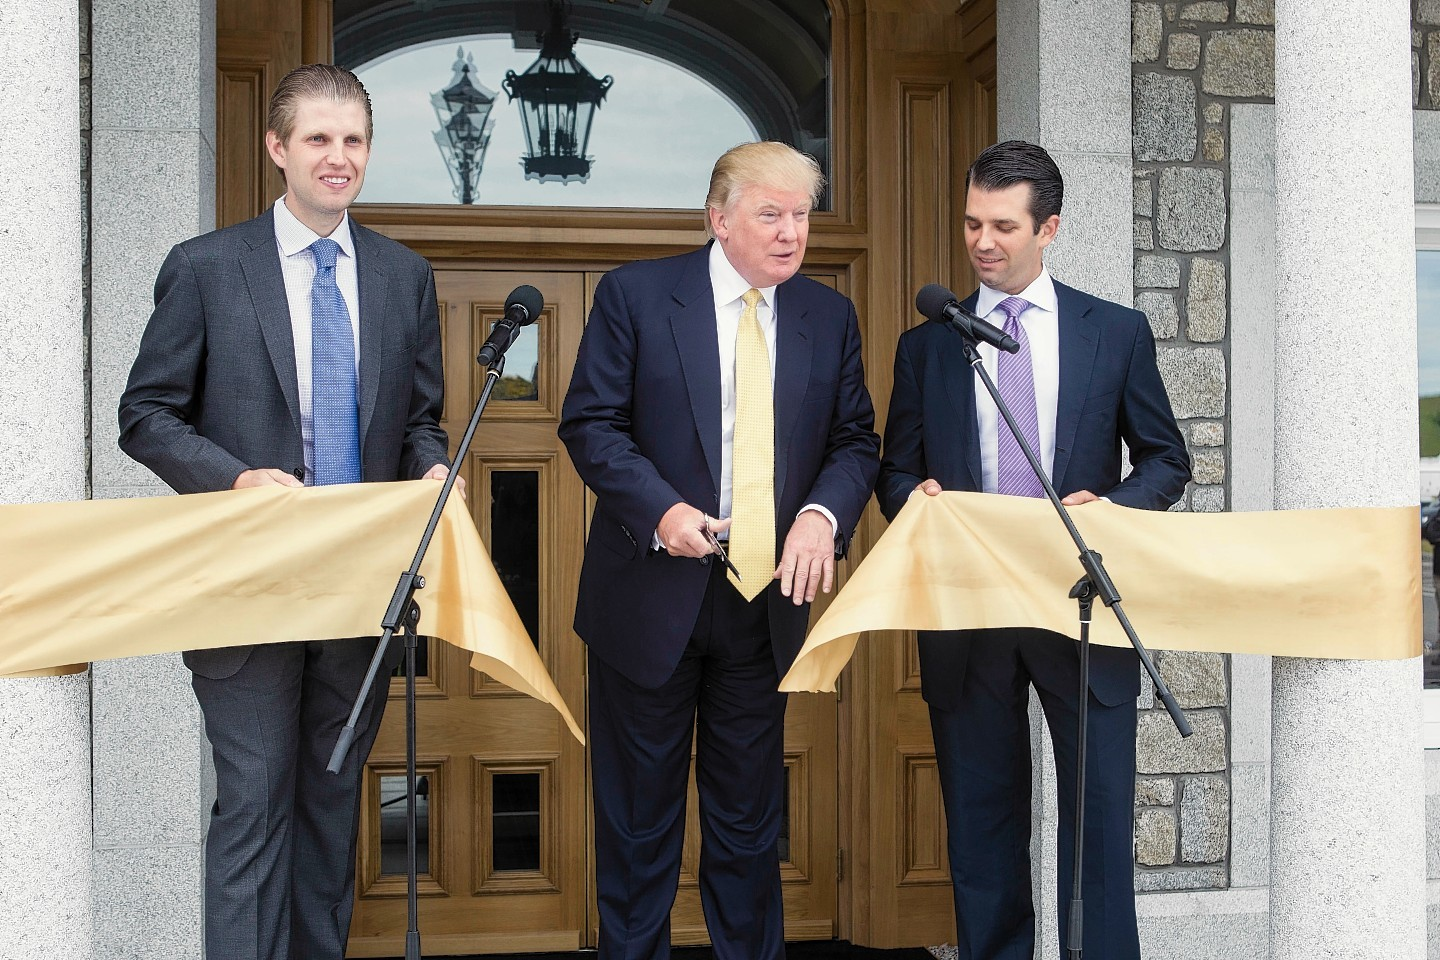 American Billionaire Donald Trump visits his Aberdeenshire Golf Course at Menie to open the new clubhouse